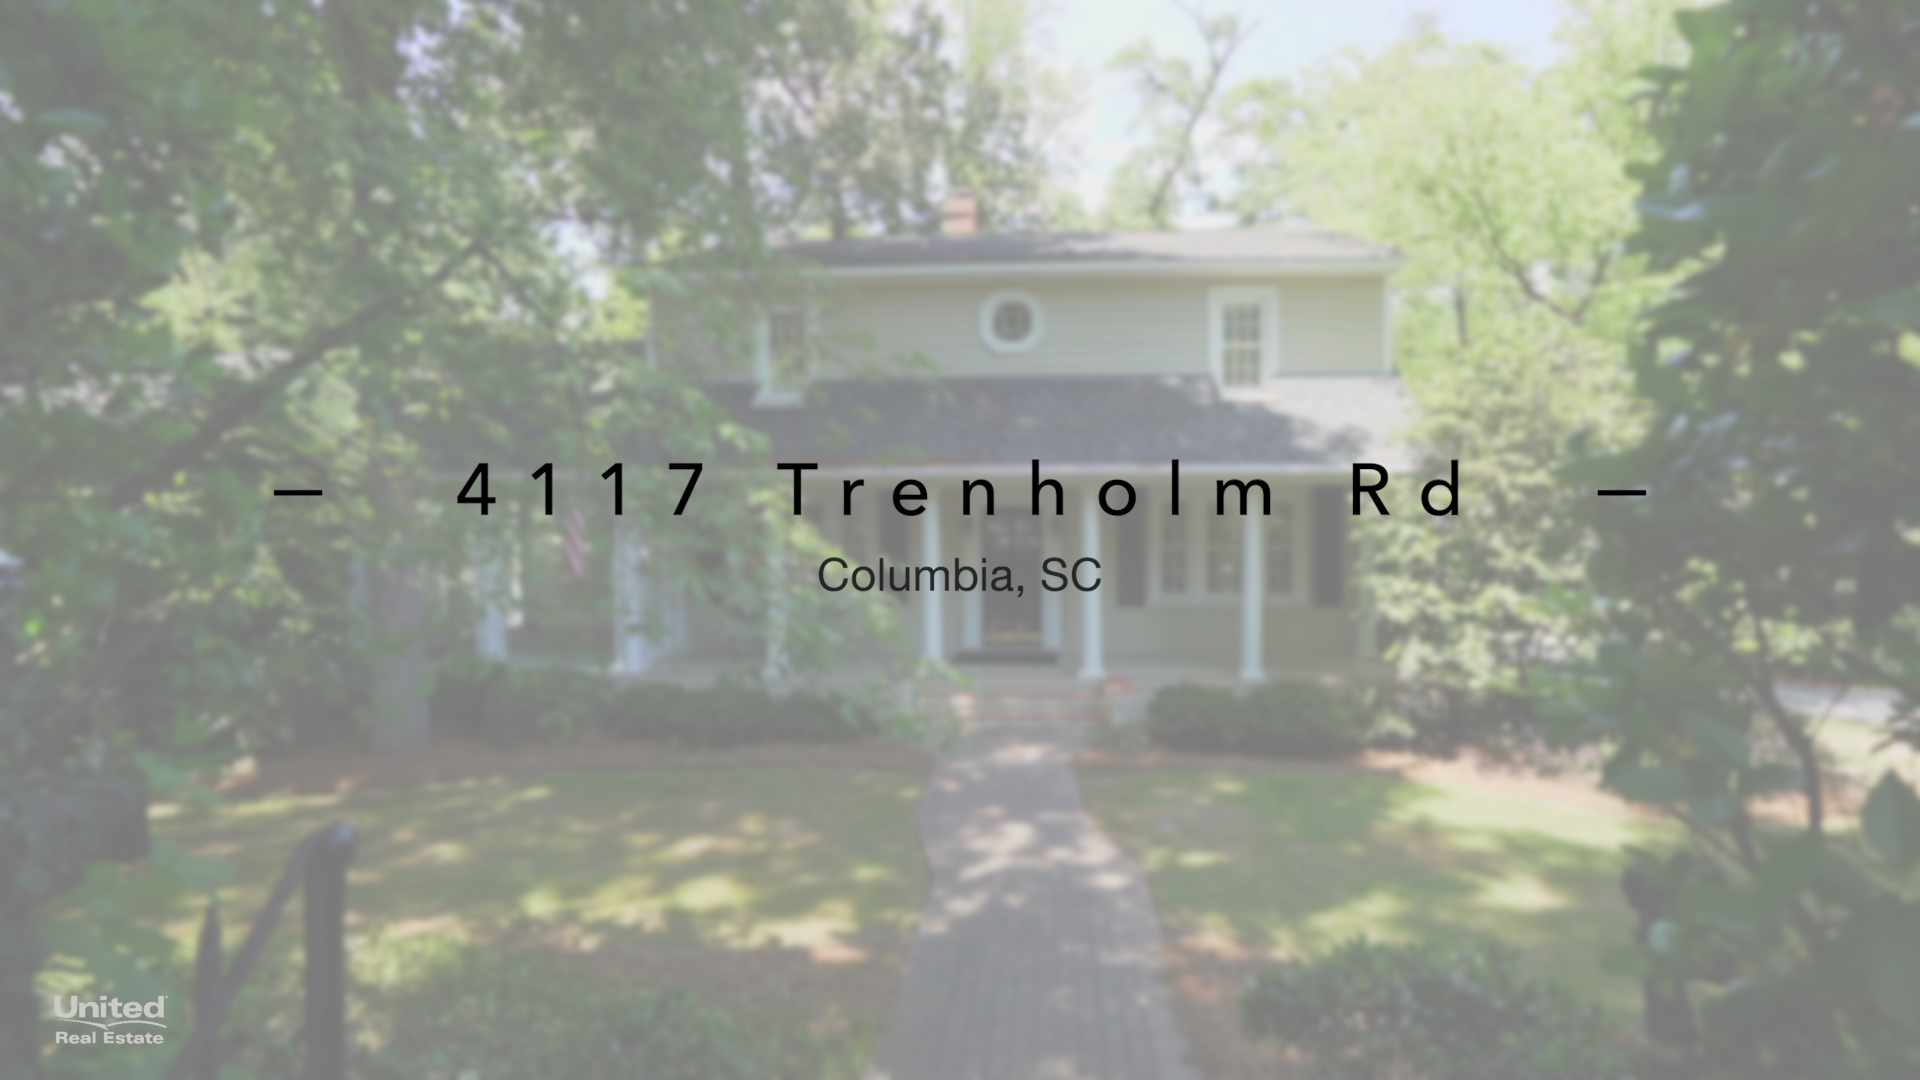 4117 Trenholm Showcase Video-HD 1080p.mo